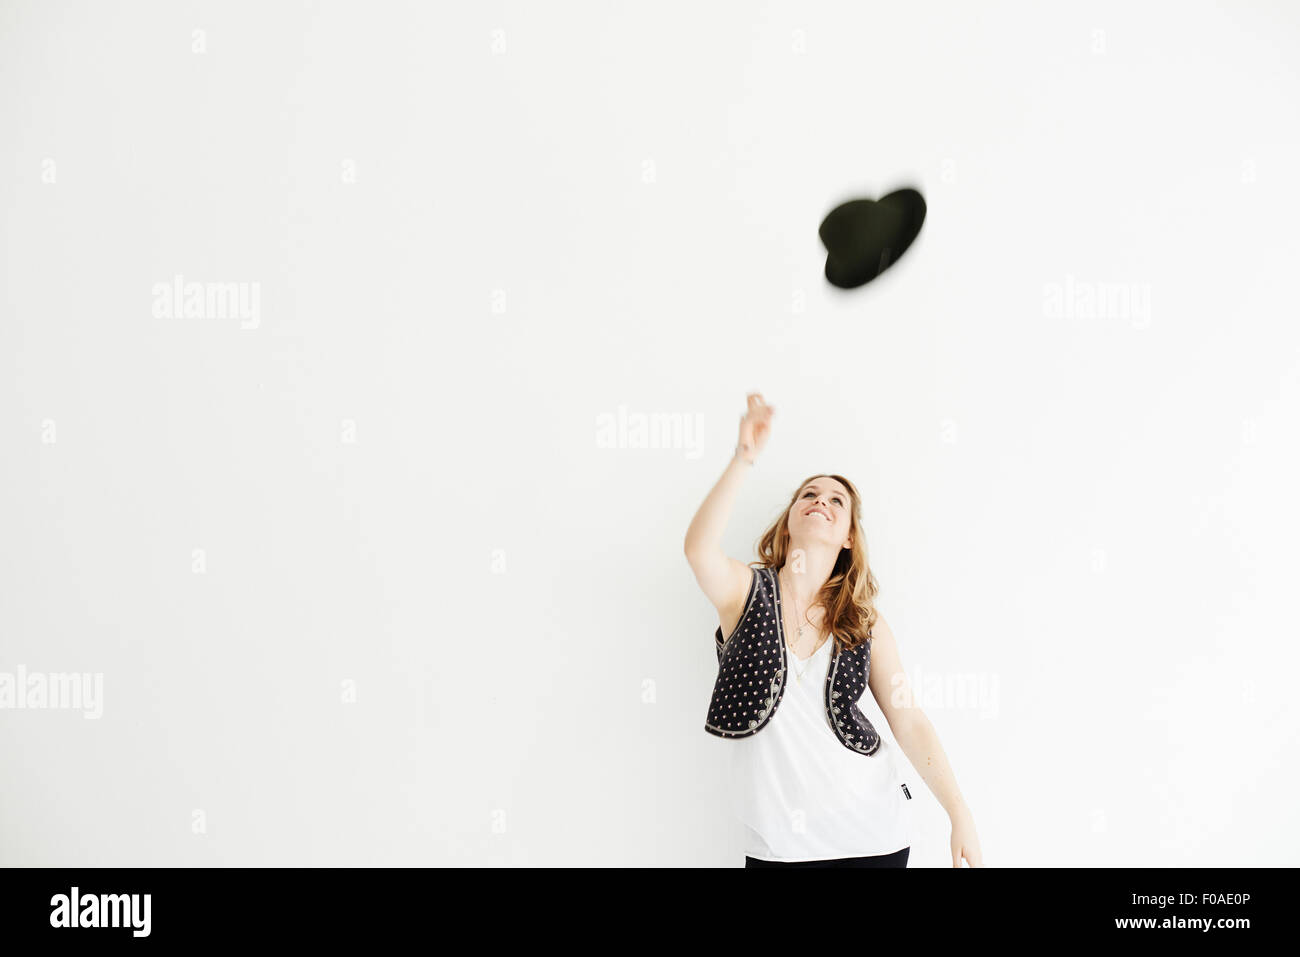 Mid adult woman throwing hat in the air, copy space - Stock Image